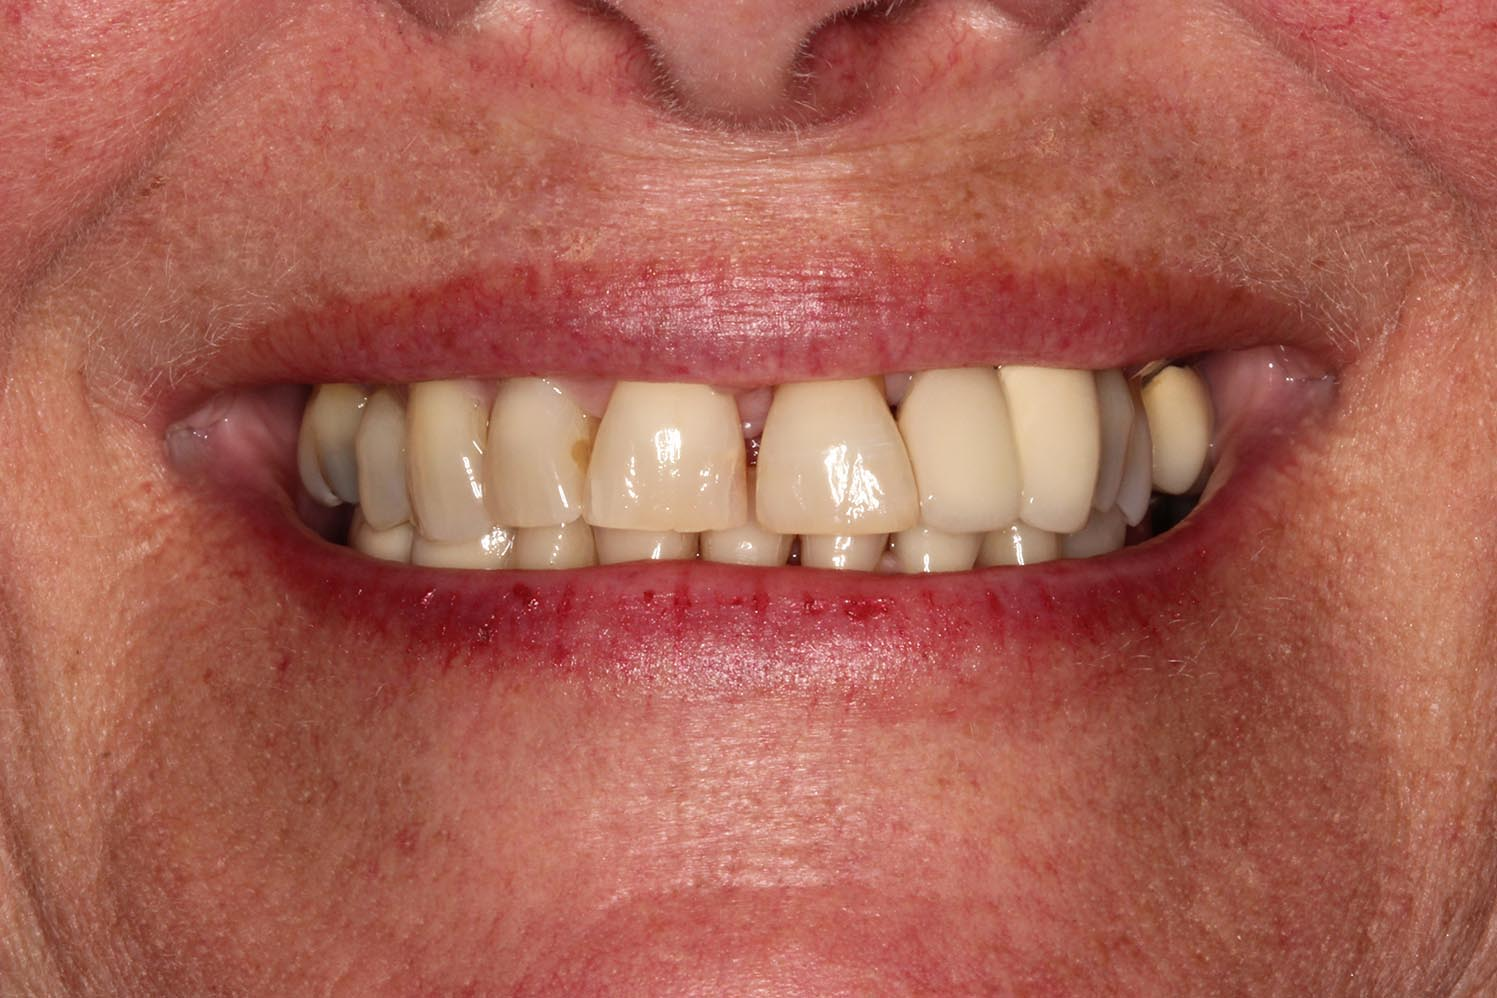 Teeth with no limited care, esthetics